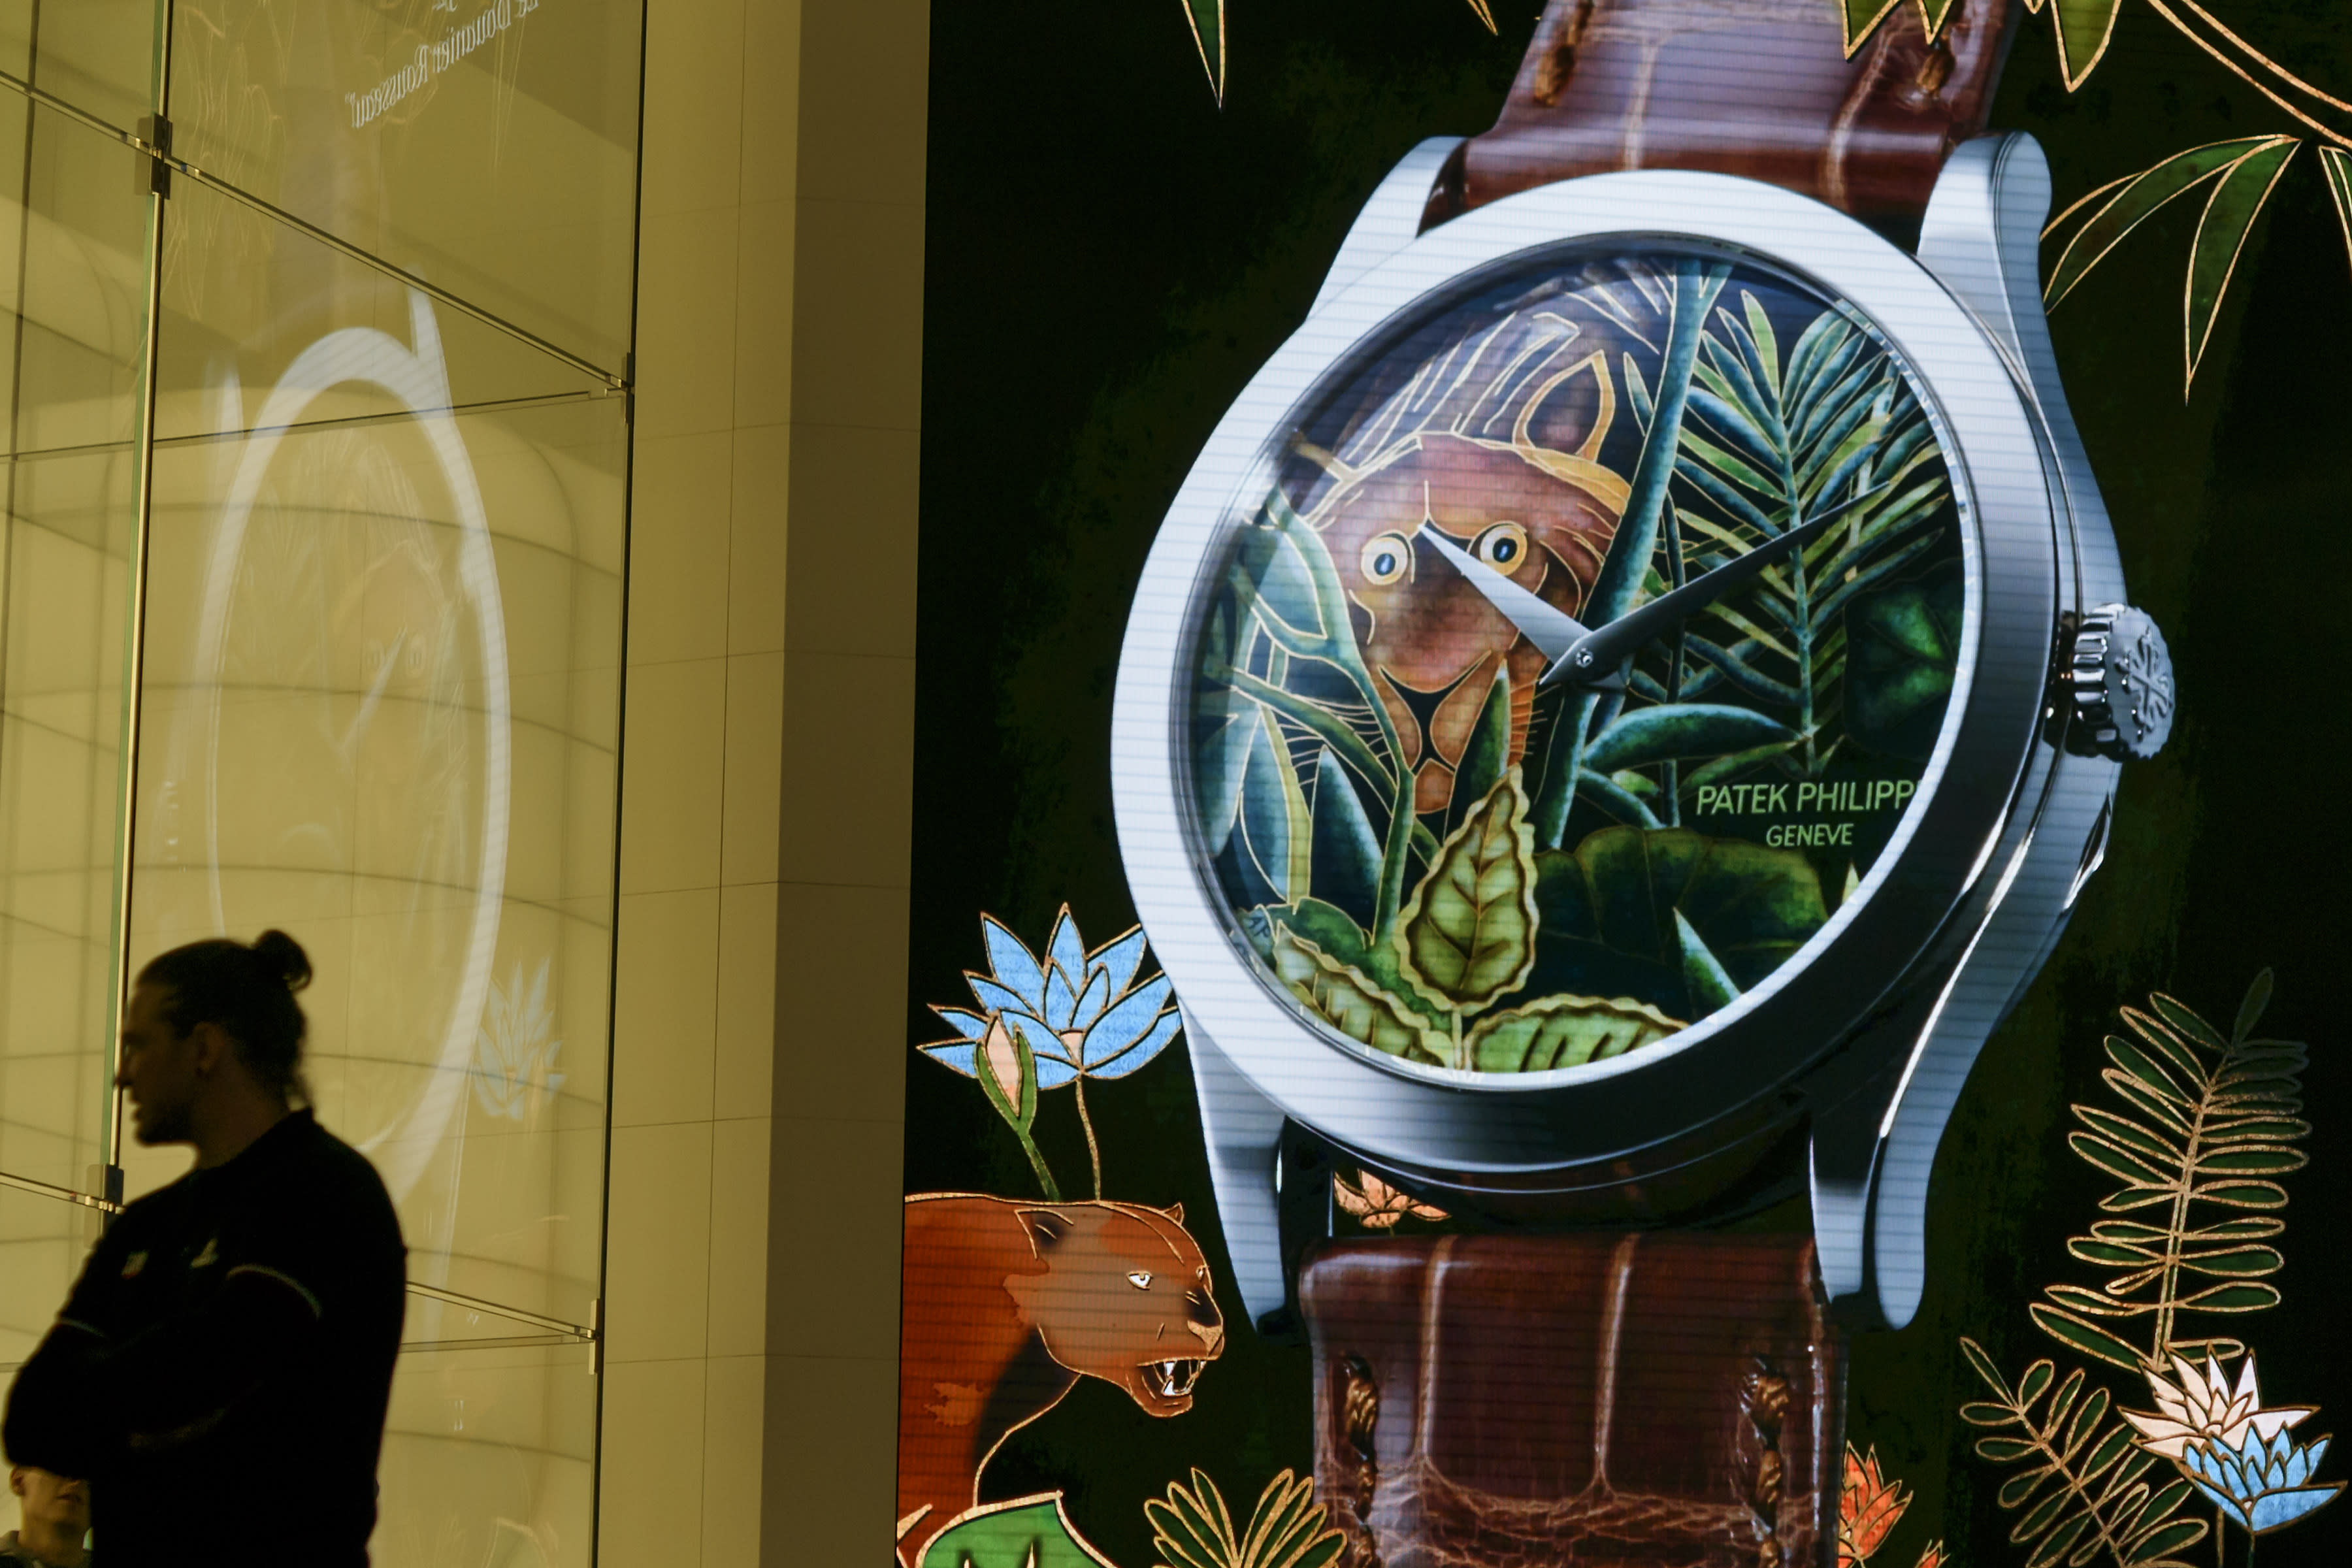 How Fossil's Smartwatch Embrace Could Challenge Apple